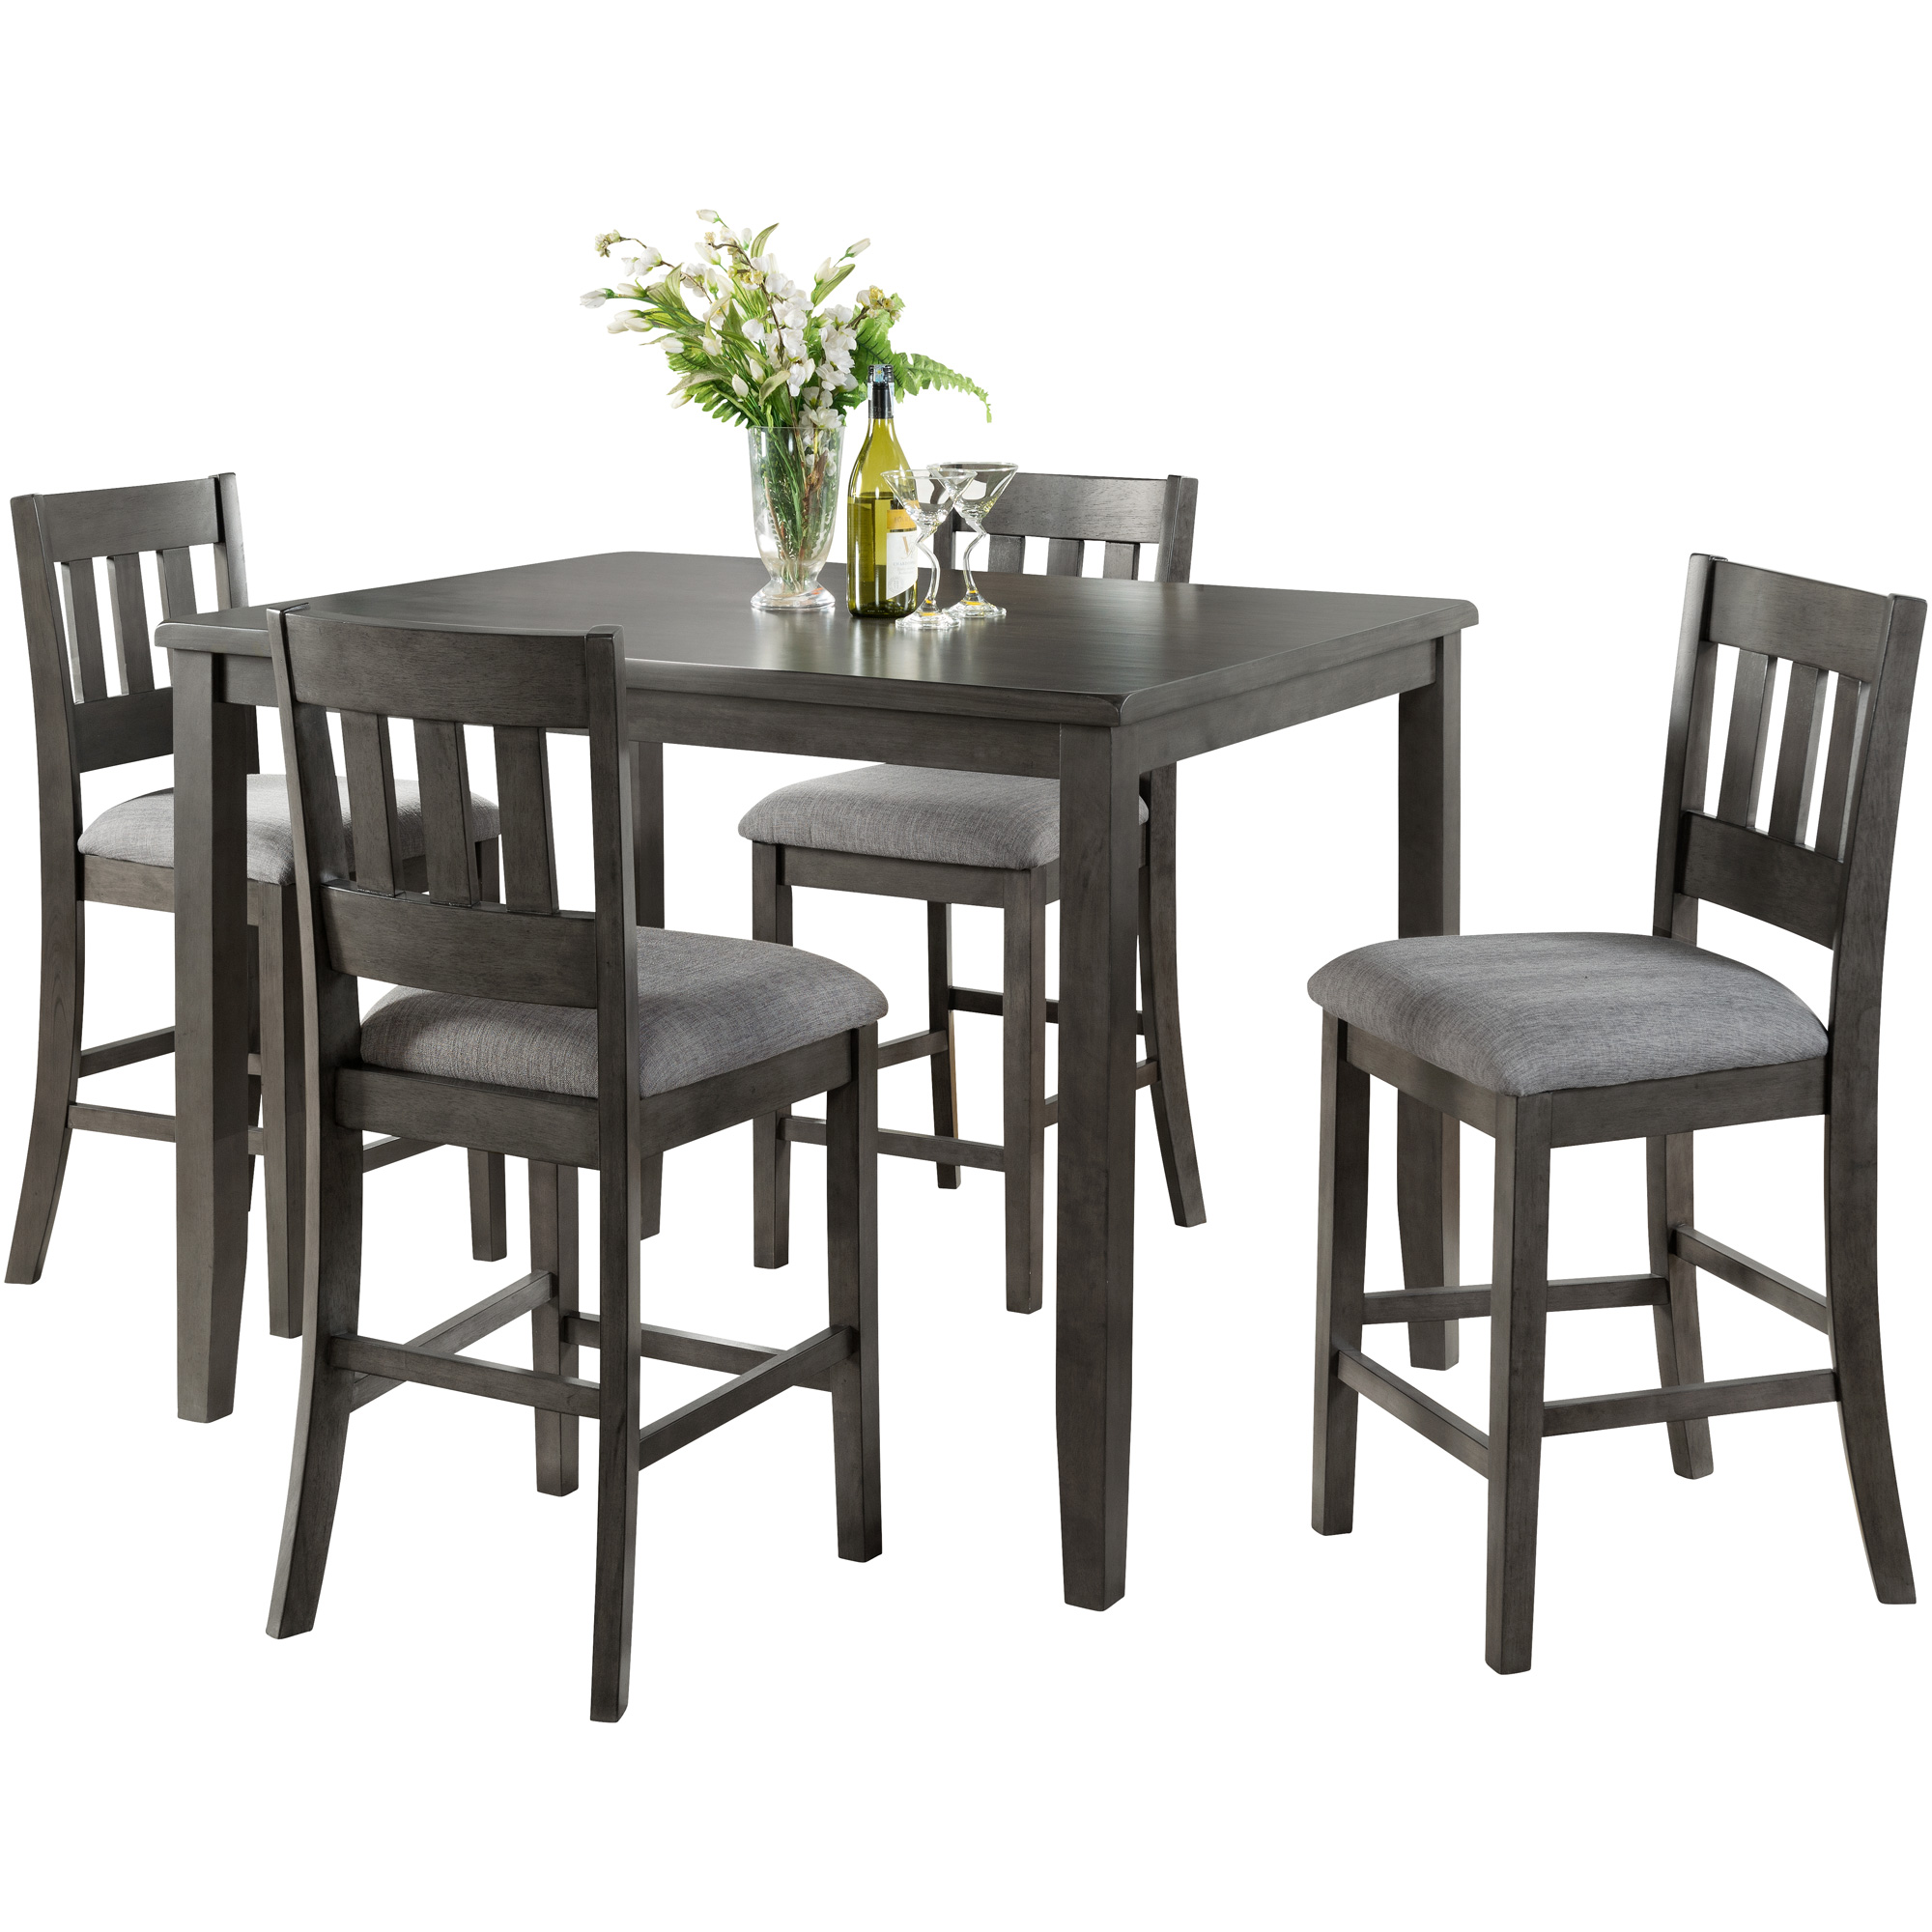 Vilo Home | Ithaca Gray 5 Piece Counter Dining Set